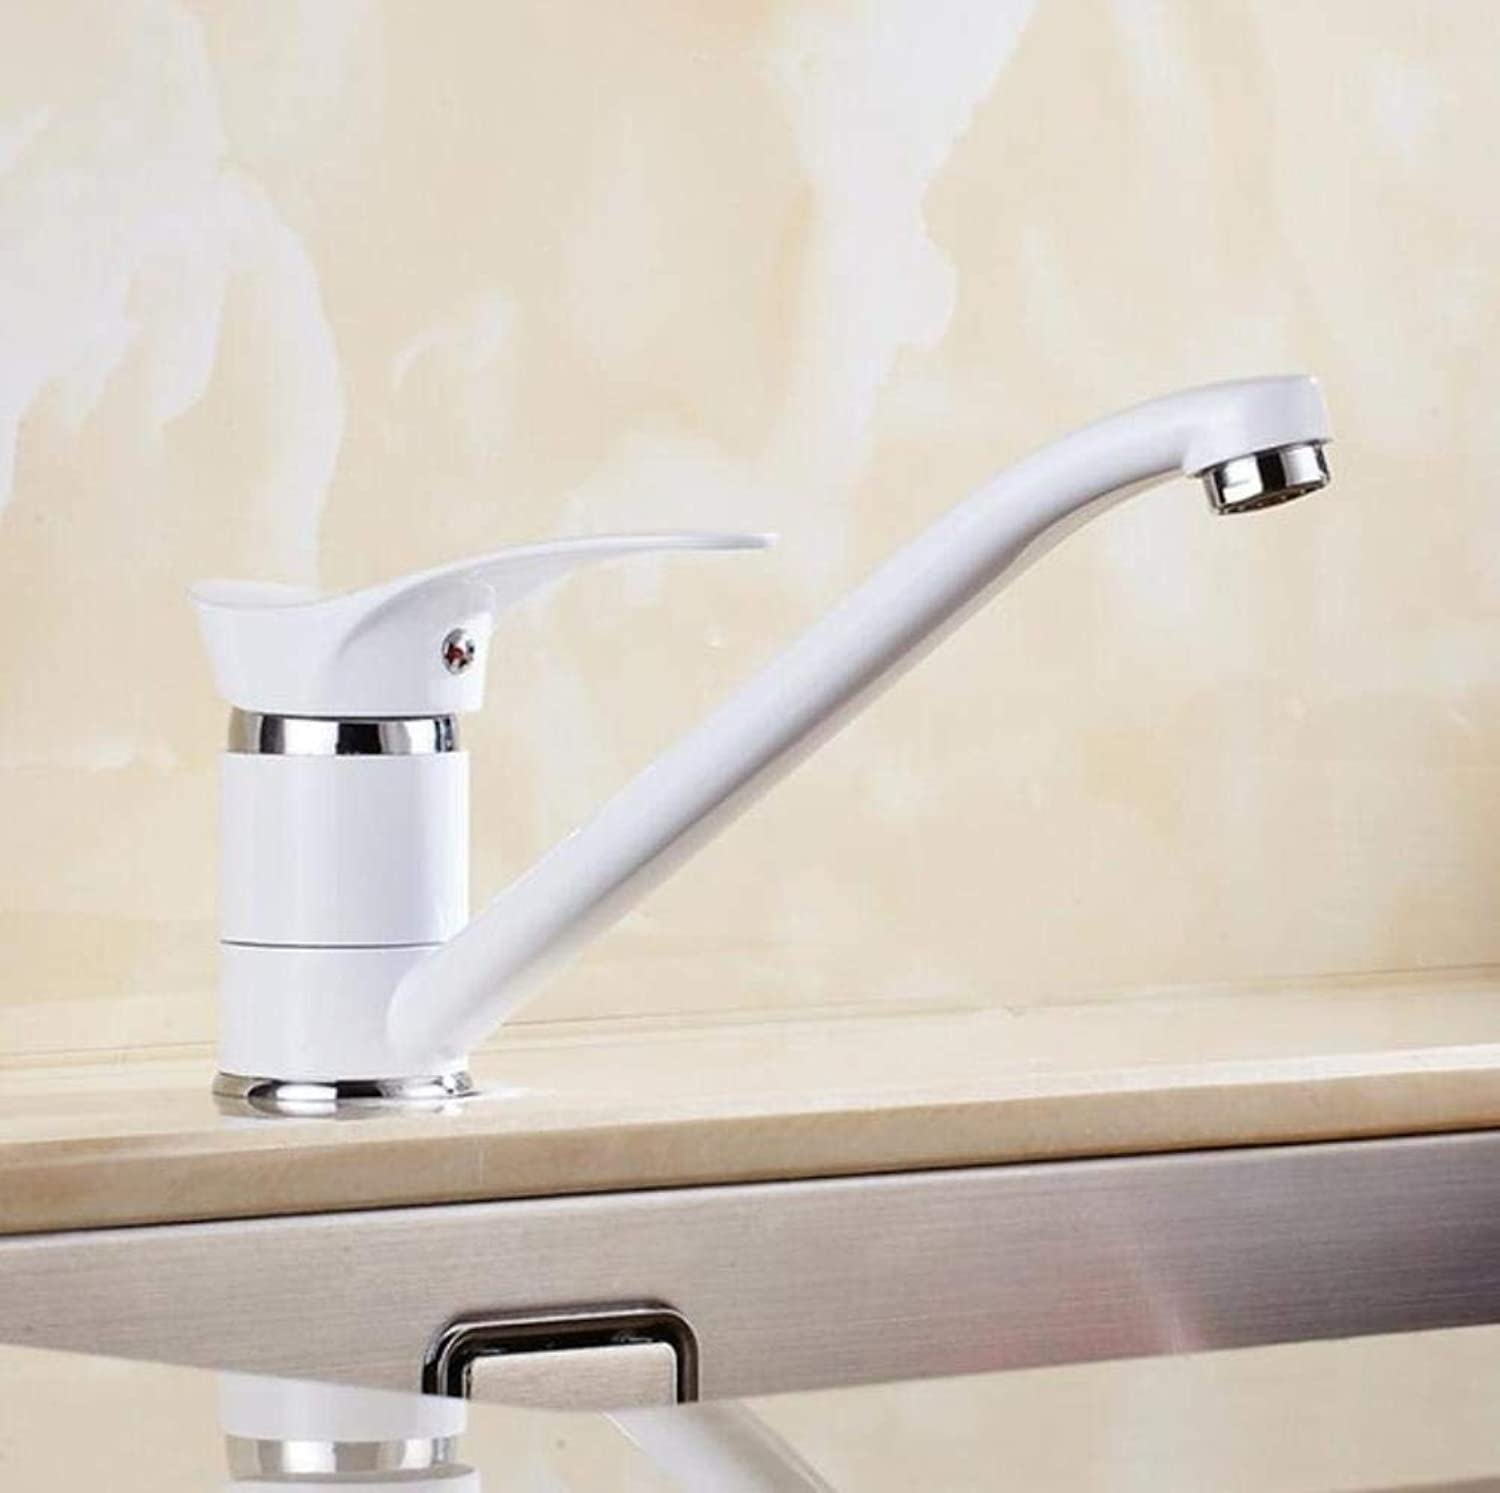 Kai&Guo hot and cold single lever hot and cold kitchen faucet Swivel Black White Kitchen mixer Water tap sink faucet,white